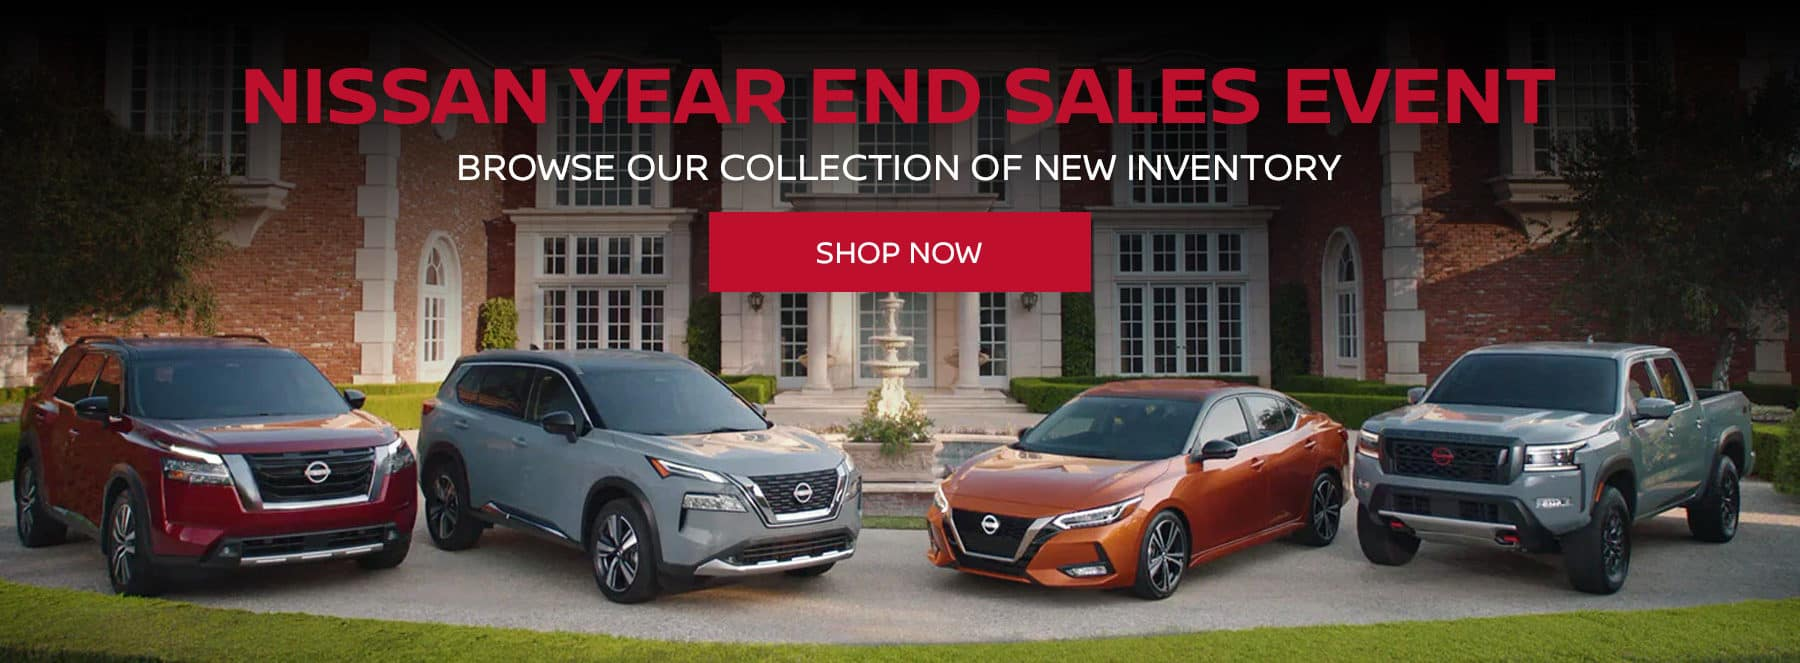 aug 21 year end sales event